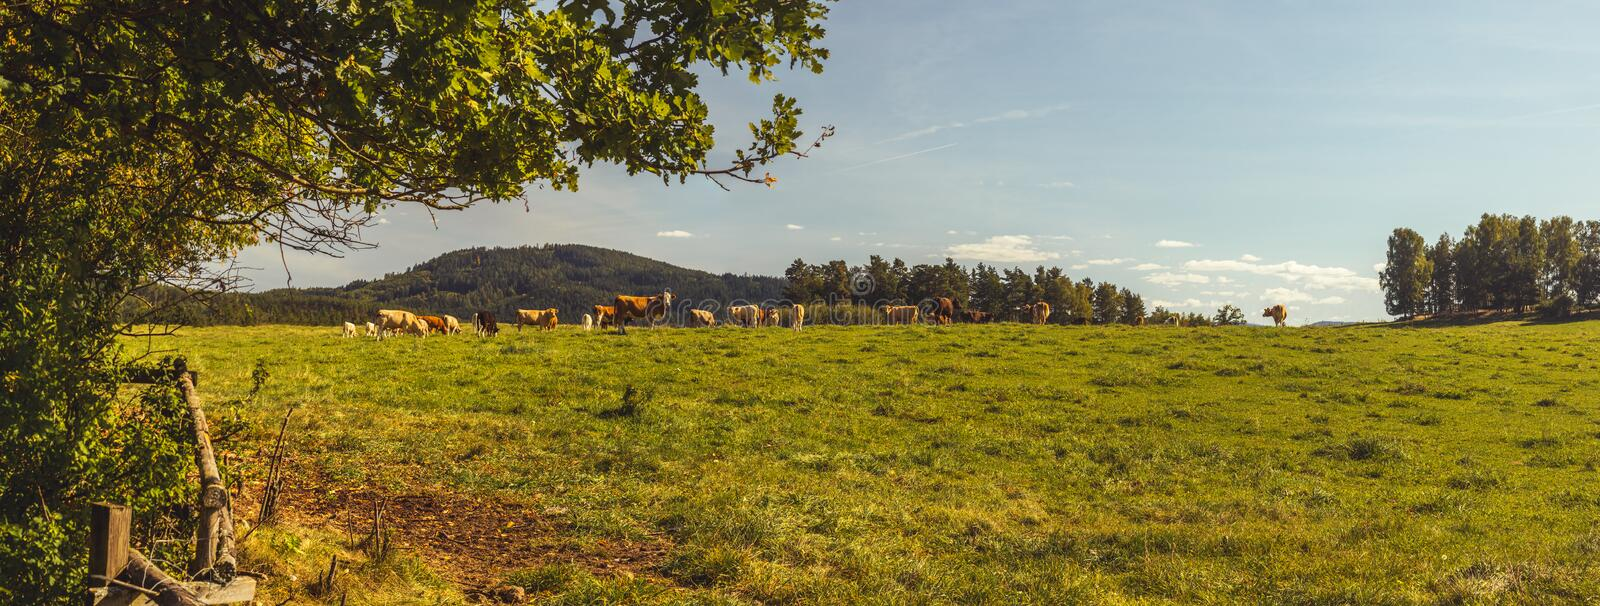 Beef cattle - herd of cows in the pasture in hilly landscape stock image